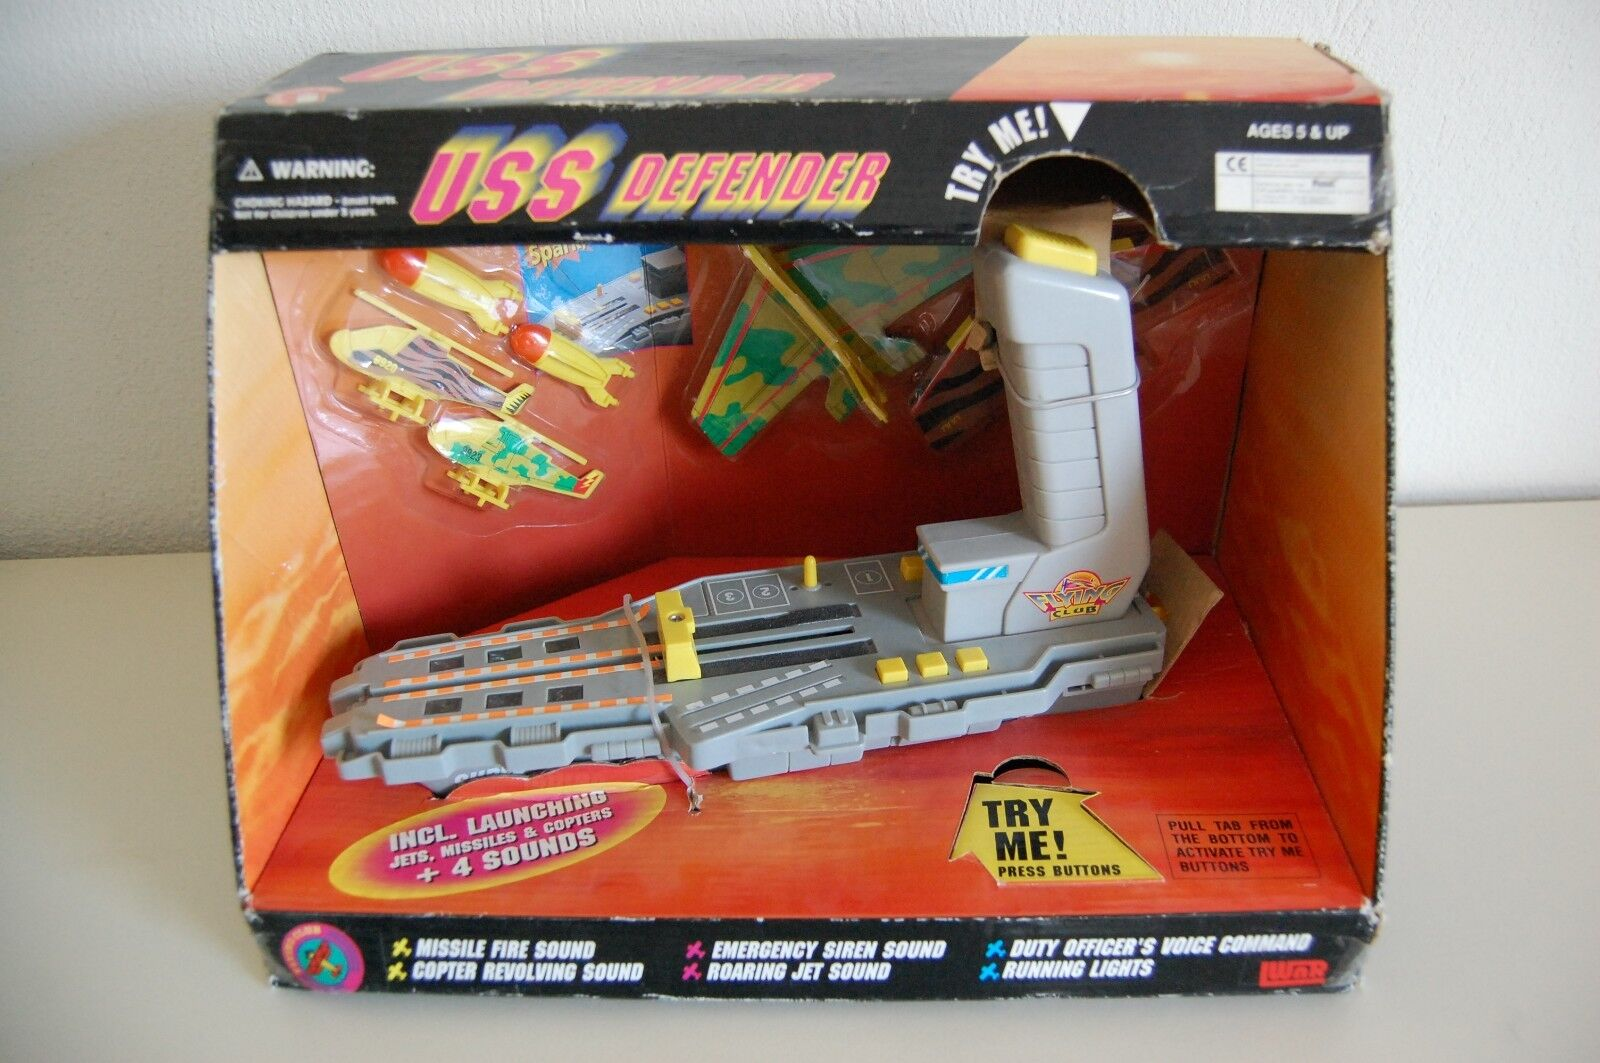 VINTAGE TOYS AIRCRAFT CARRIER USS DEFENDER  SOUNDS EFFECT 1994 WNR FLYING CLUB